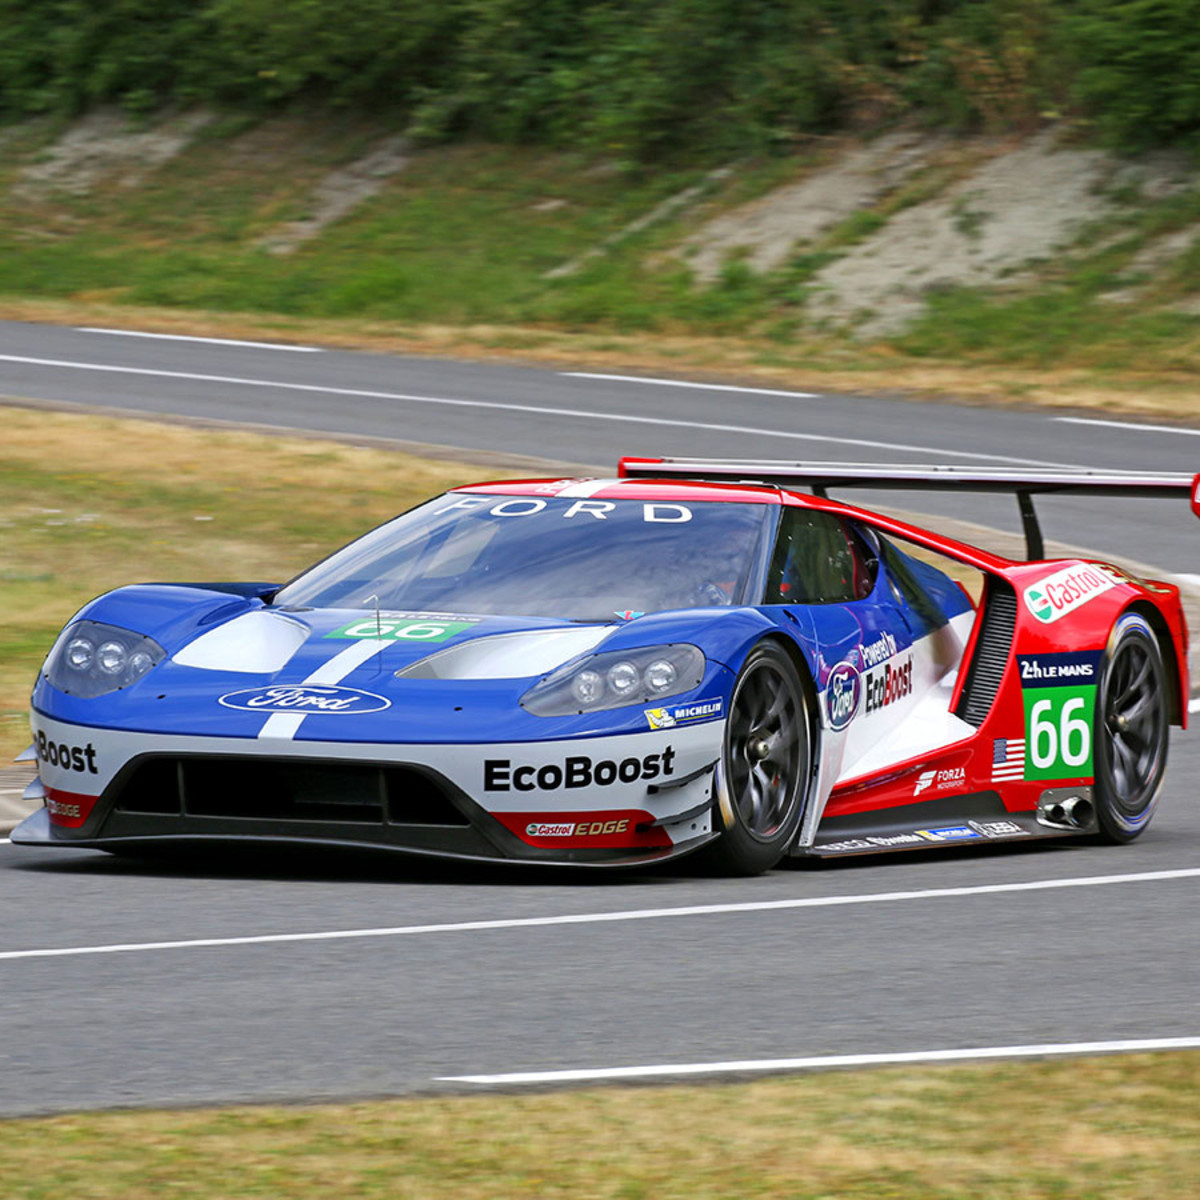 thedrive-bodyphoto4-fordgt.jpg